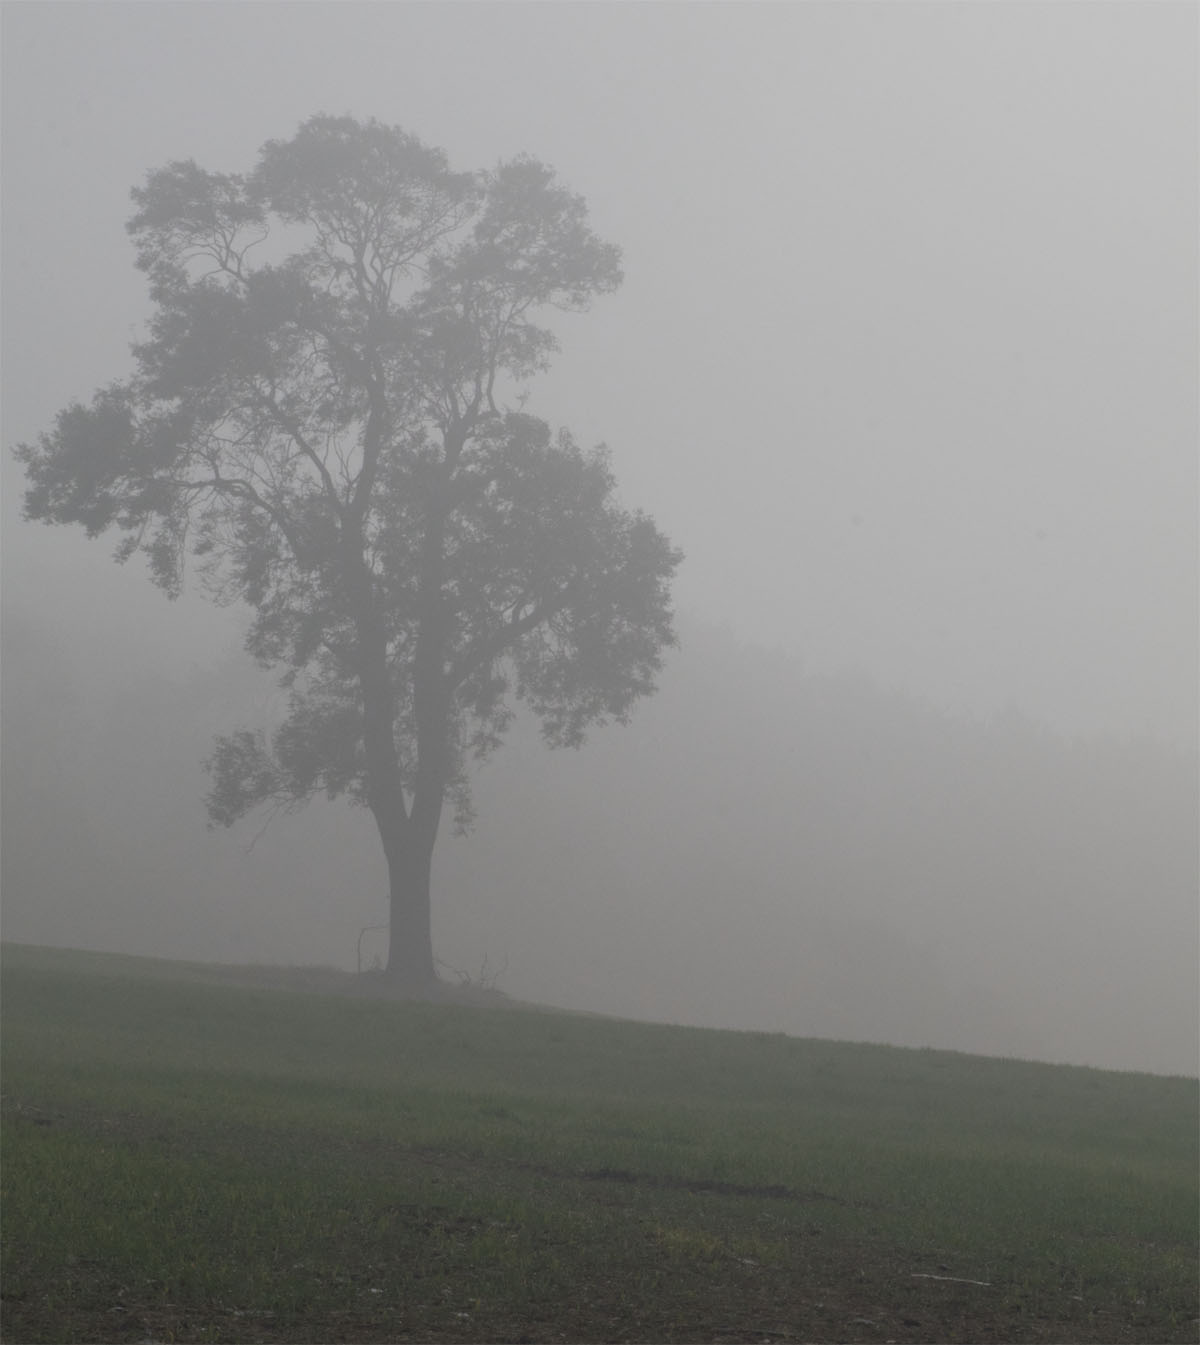 Tree in the mist 27 Sept 2017